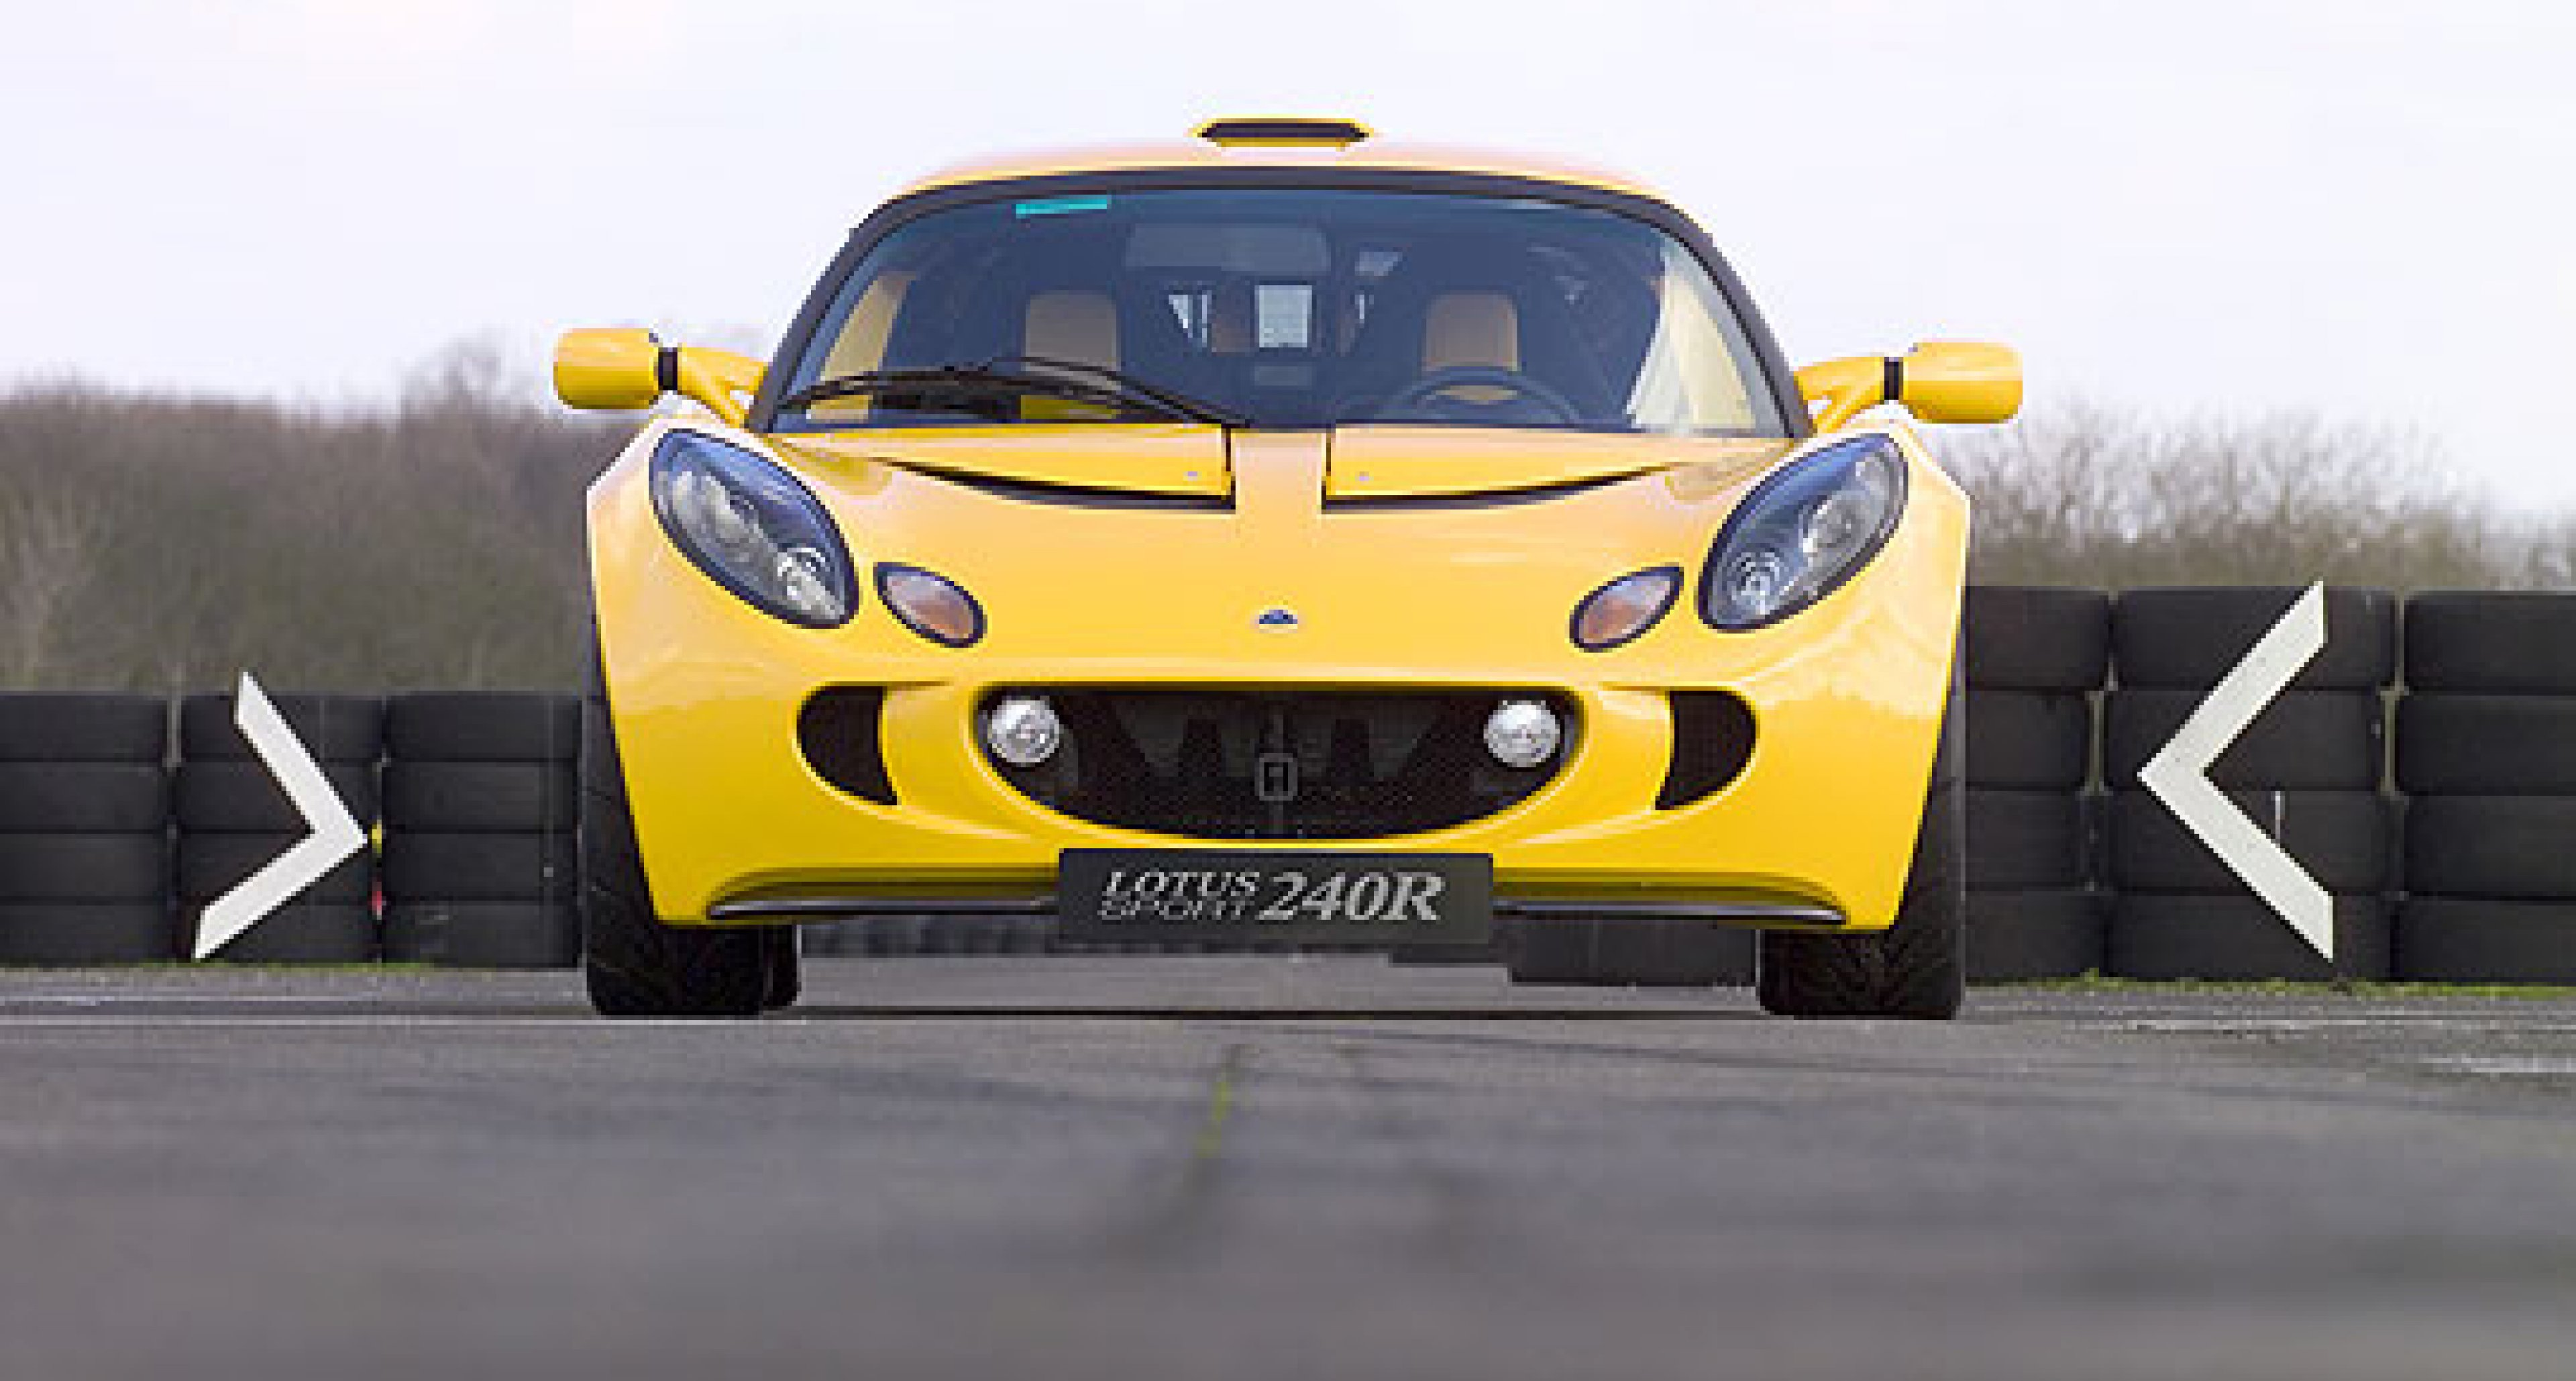 Limited Edition Lotus Sport Exige 240R